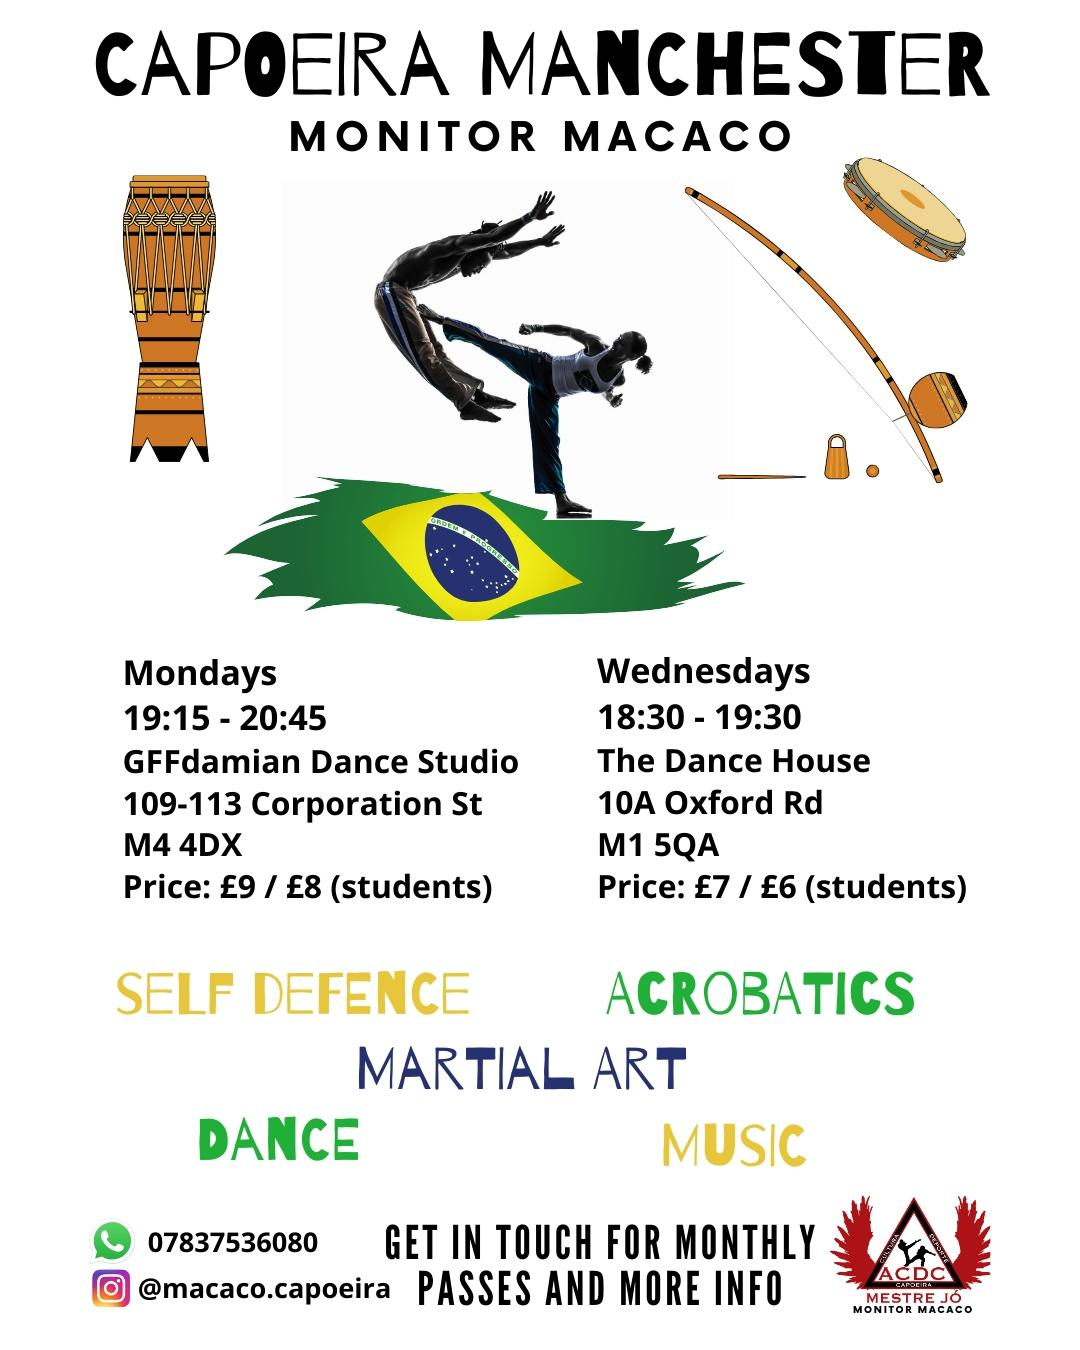 Wednesday Capoeira Class in Manchester with Monitor Macaco